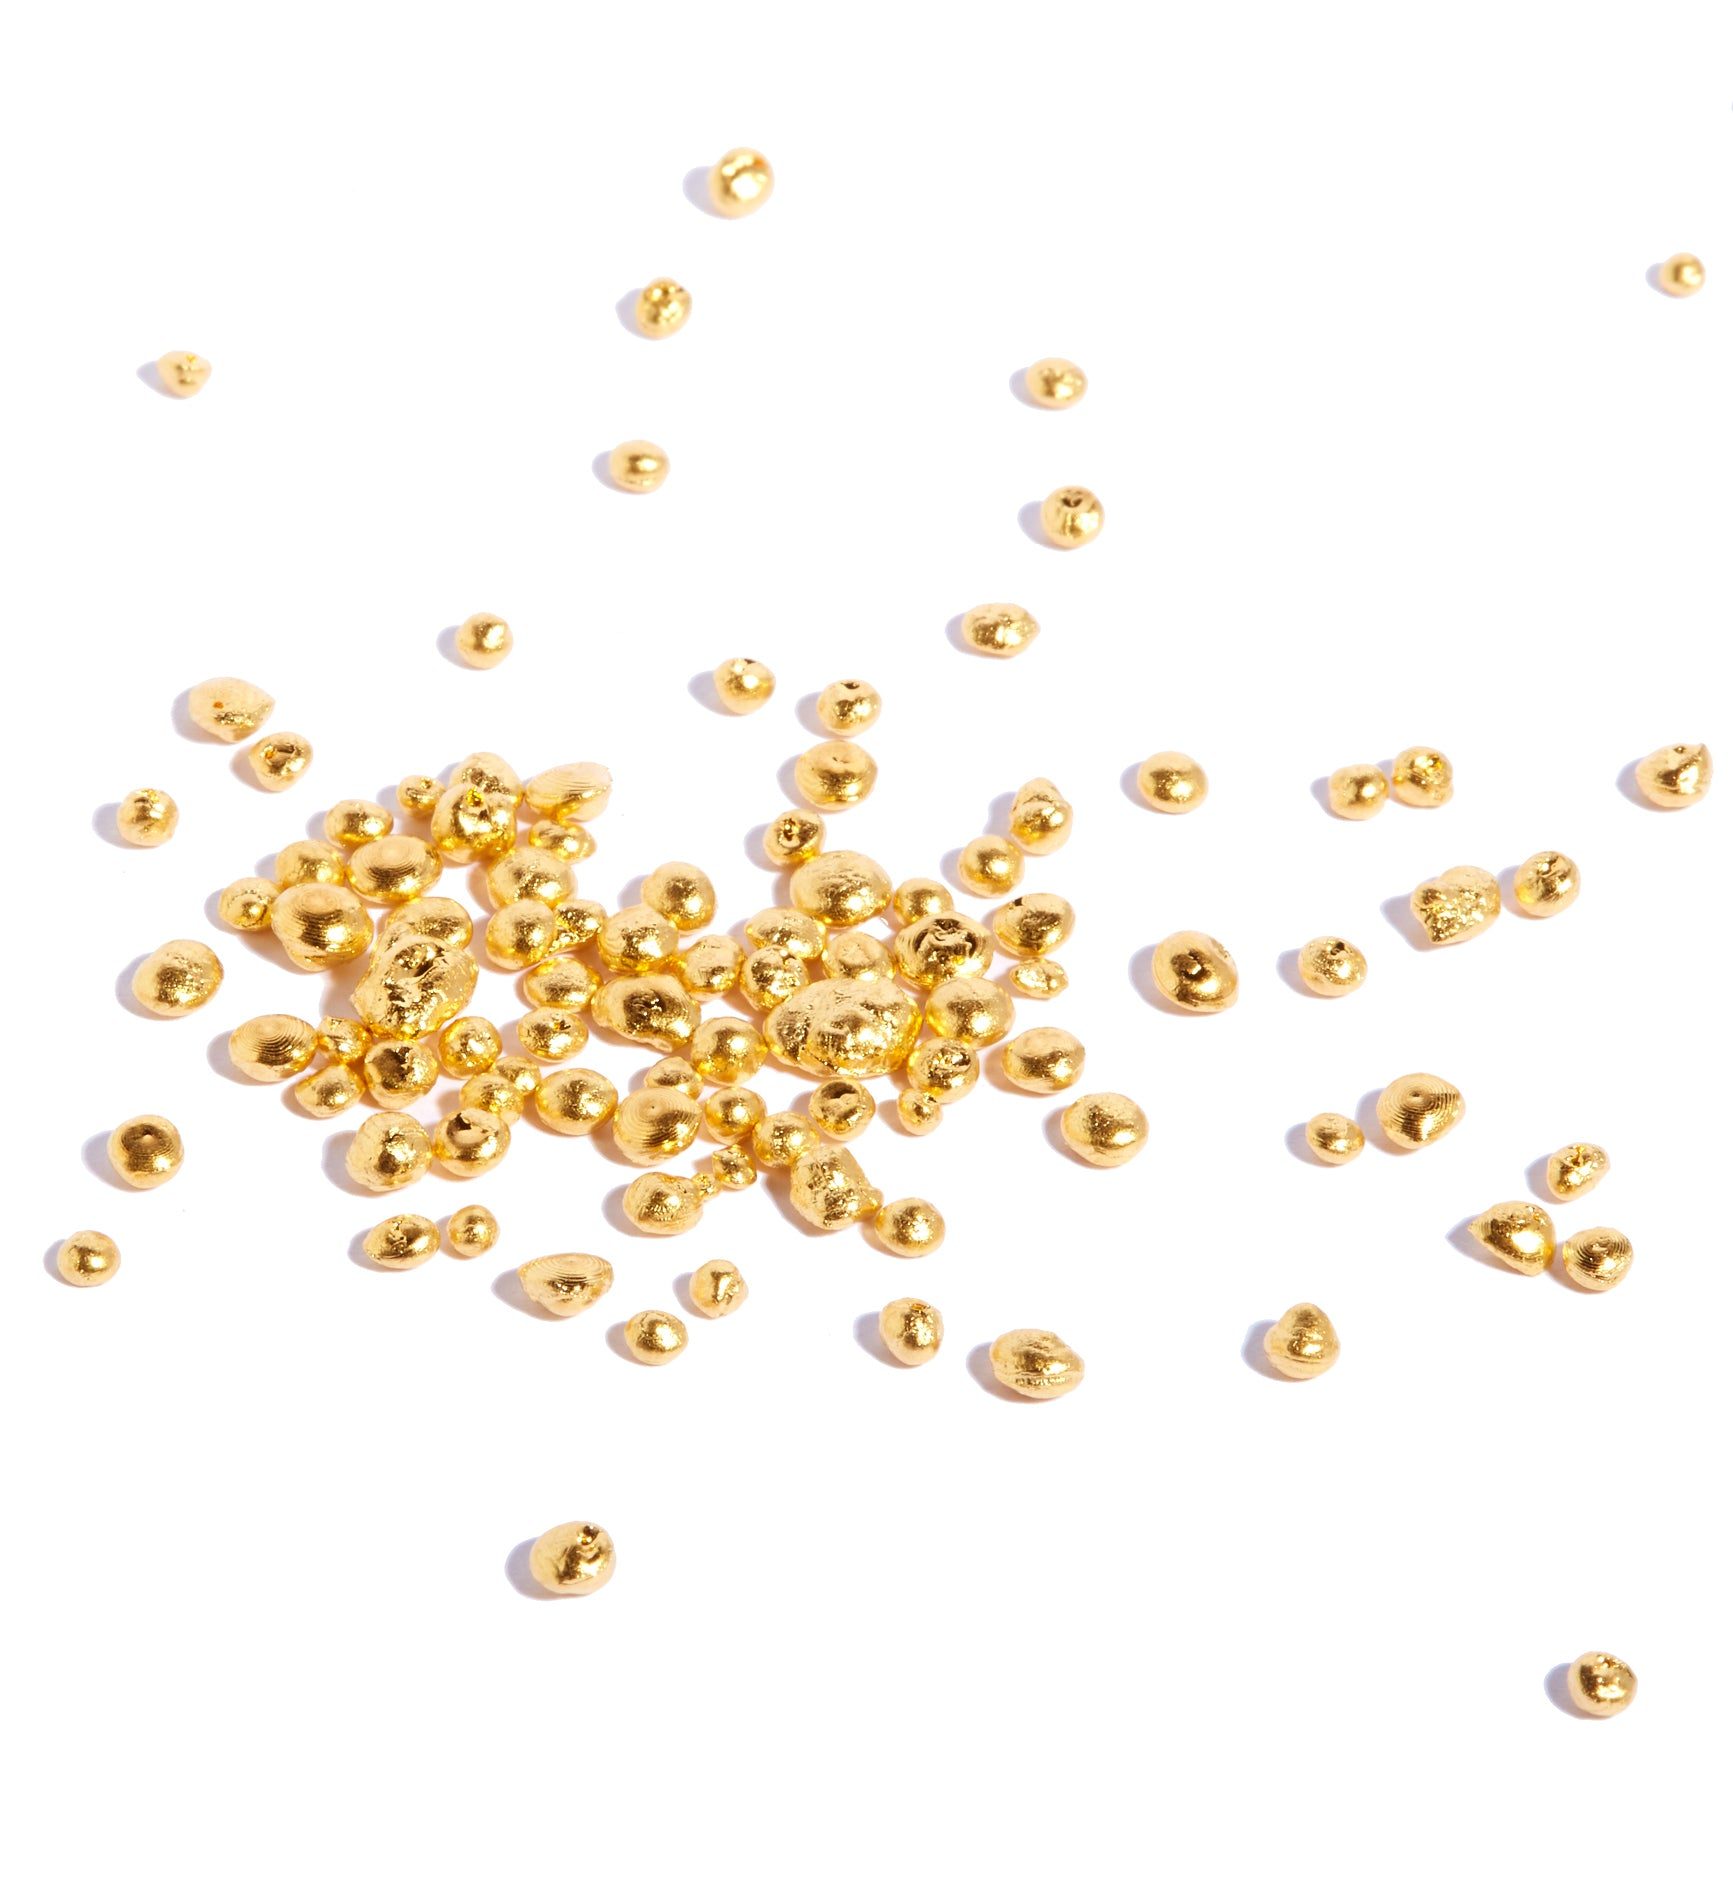 https://cdn.shopify.com/s/files/1/0571/9261/t/15/assets/gold%20granules-1509674174095.jpg?5316190426140796321